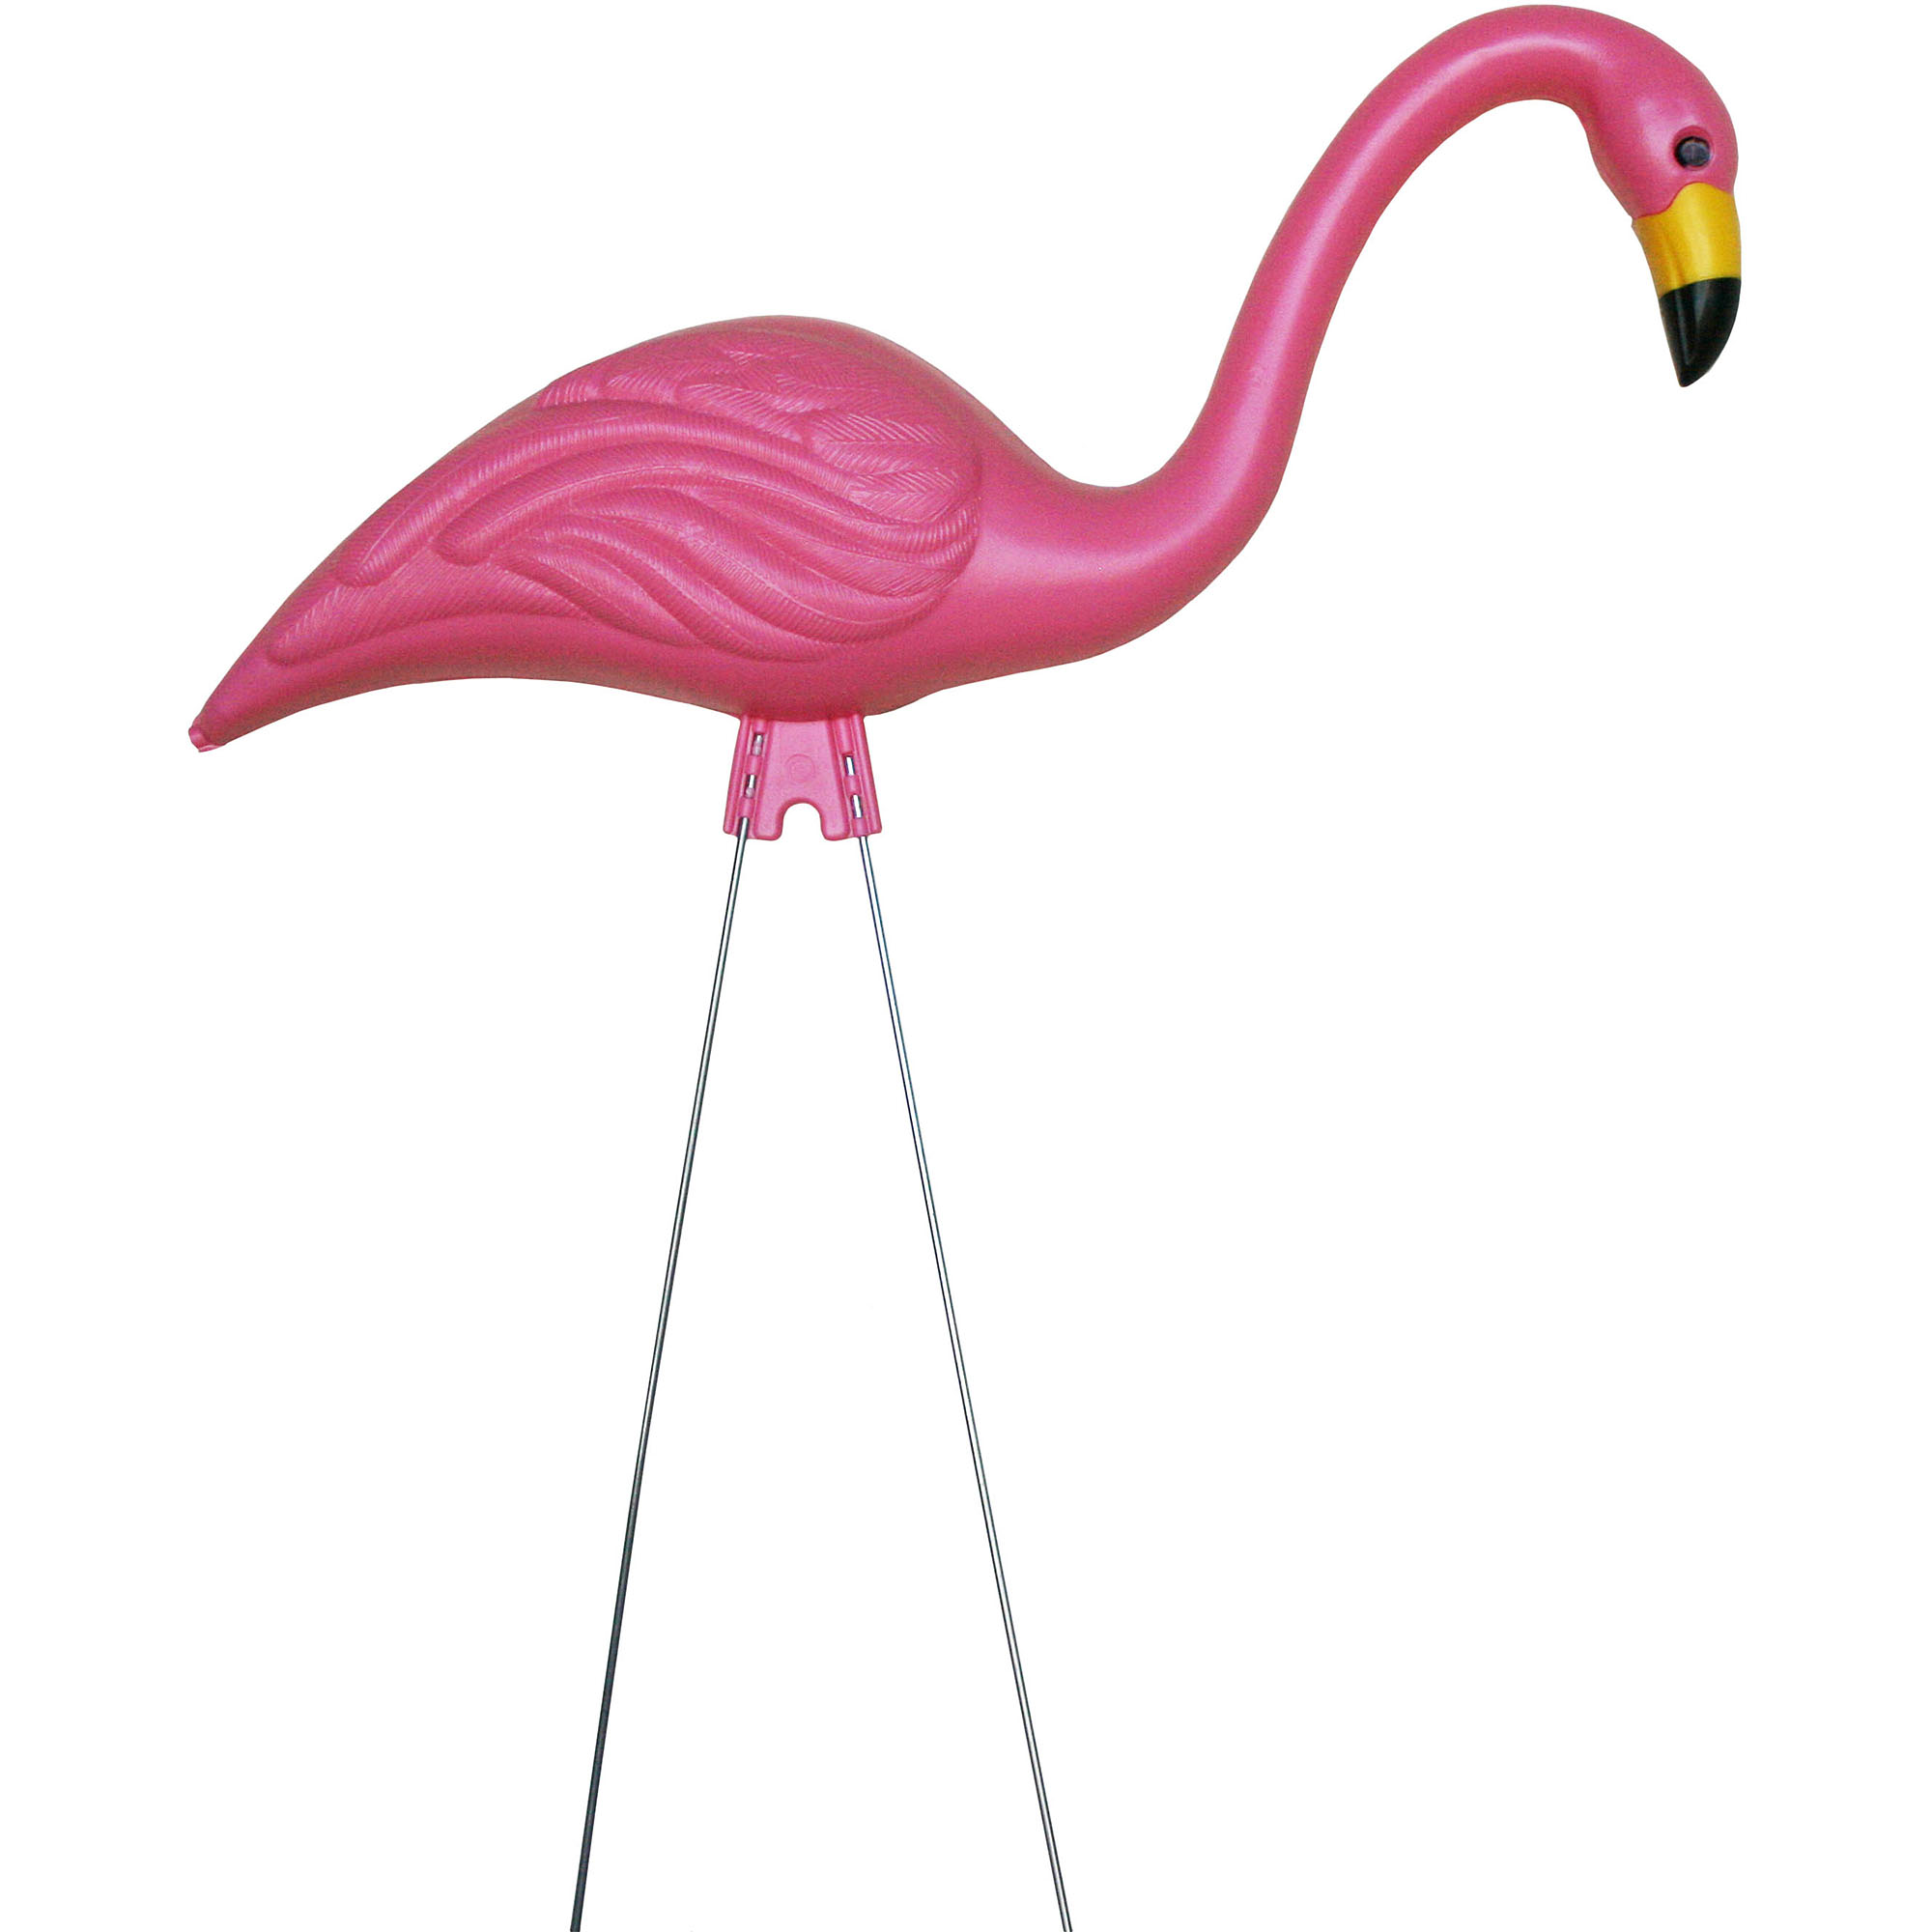 Flamingo garden ornament - Flamingo Garden Ornament 20